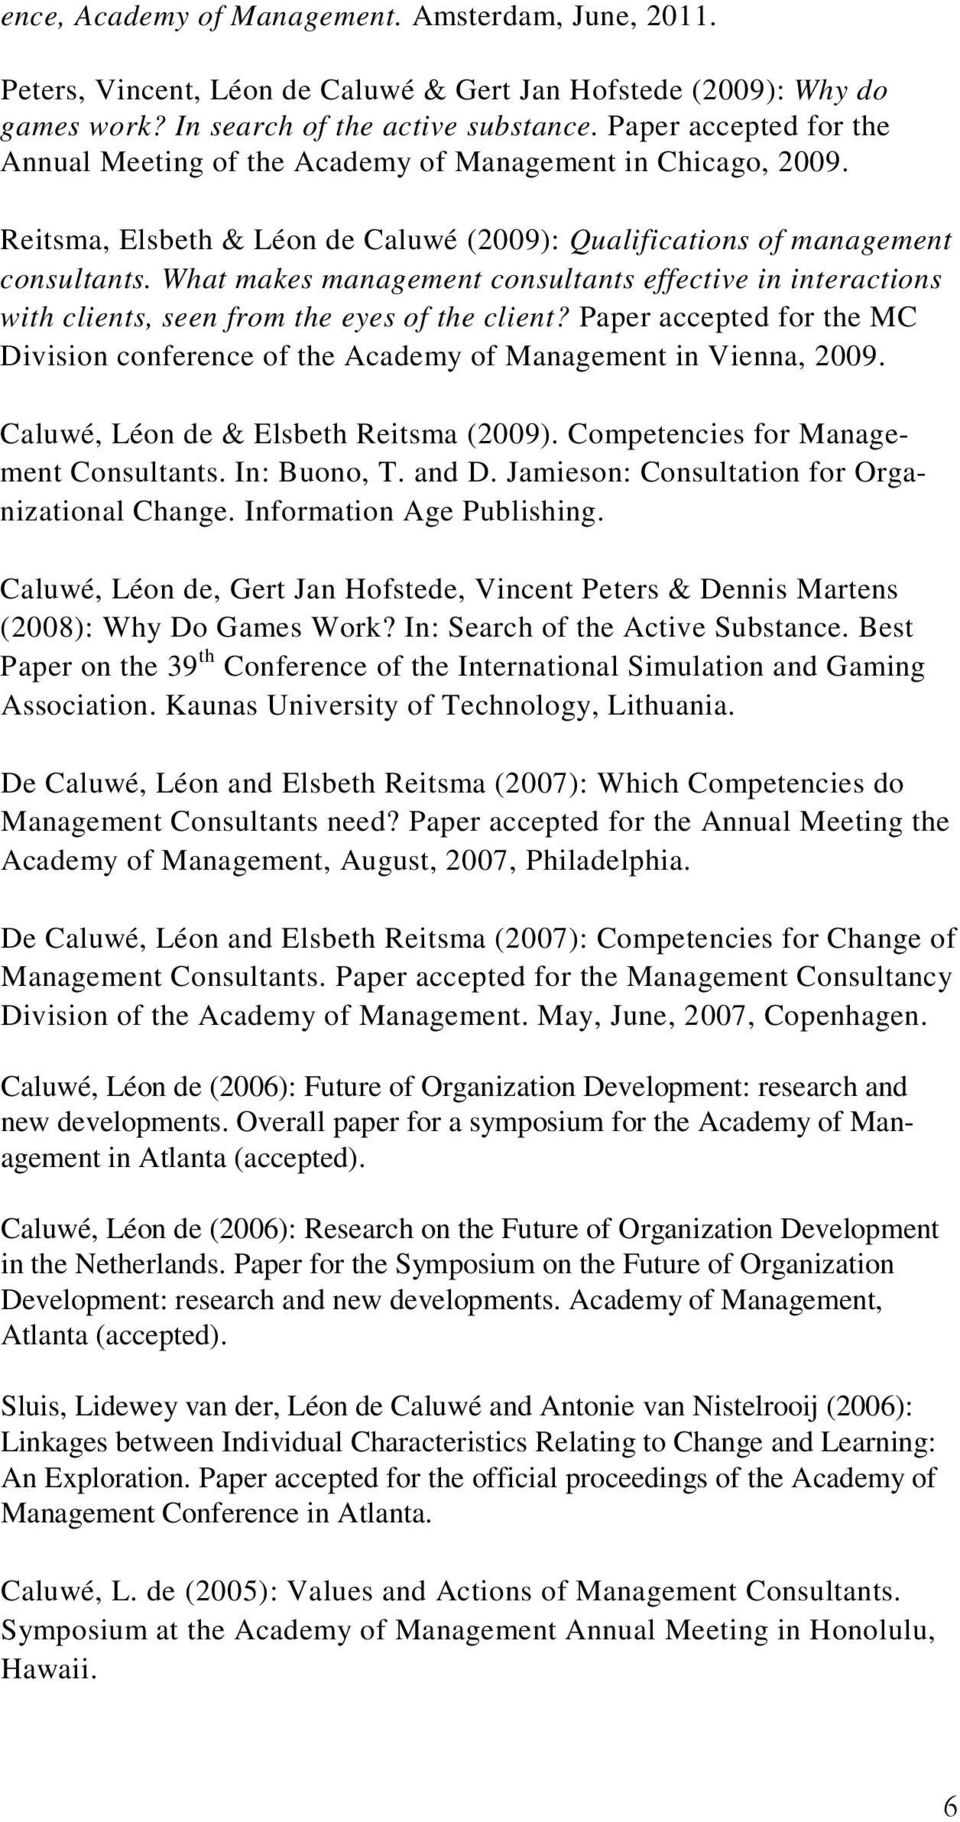 What makes management consultants effective in interactions with clients, seen from the eyes of the client? Paper accepted for the MC Division conference of the Academy of Management in Vienna, 2009.